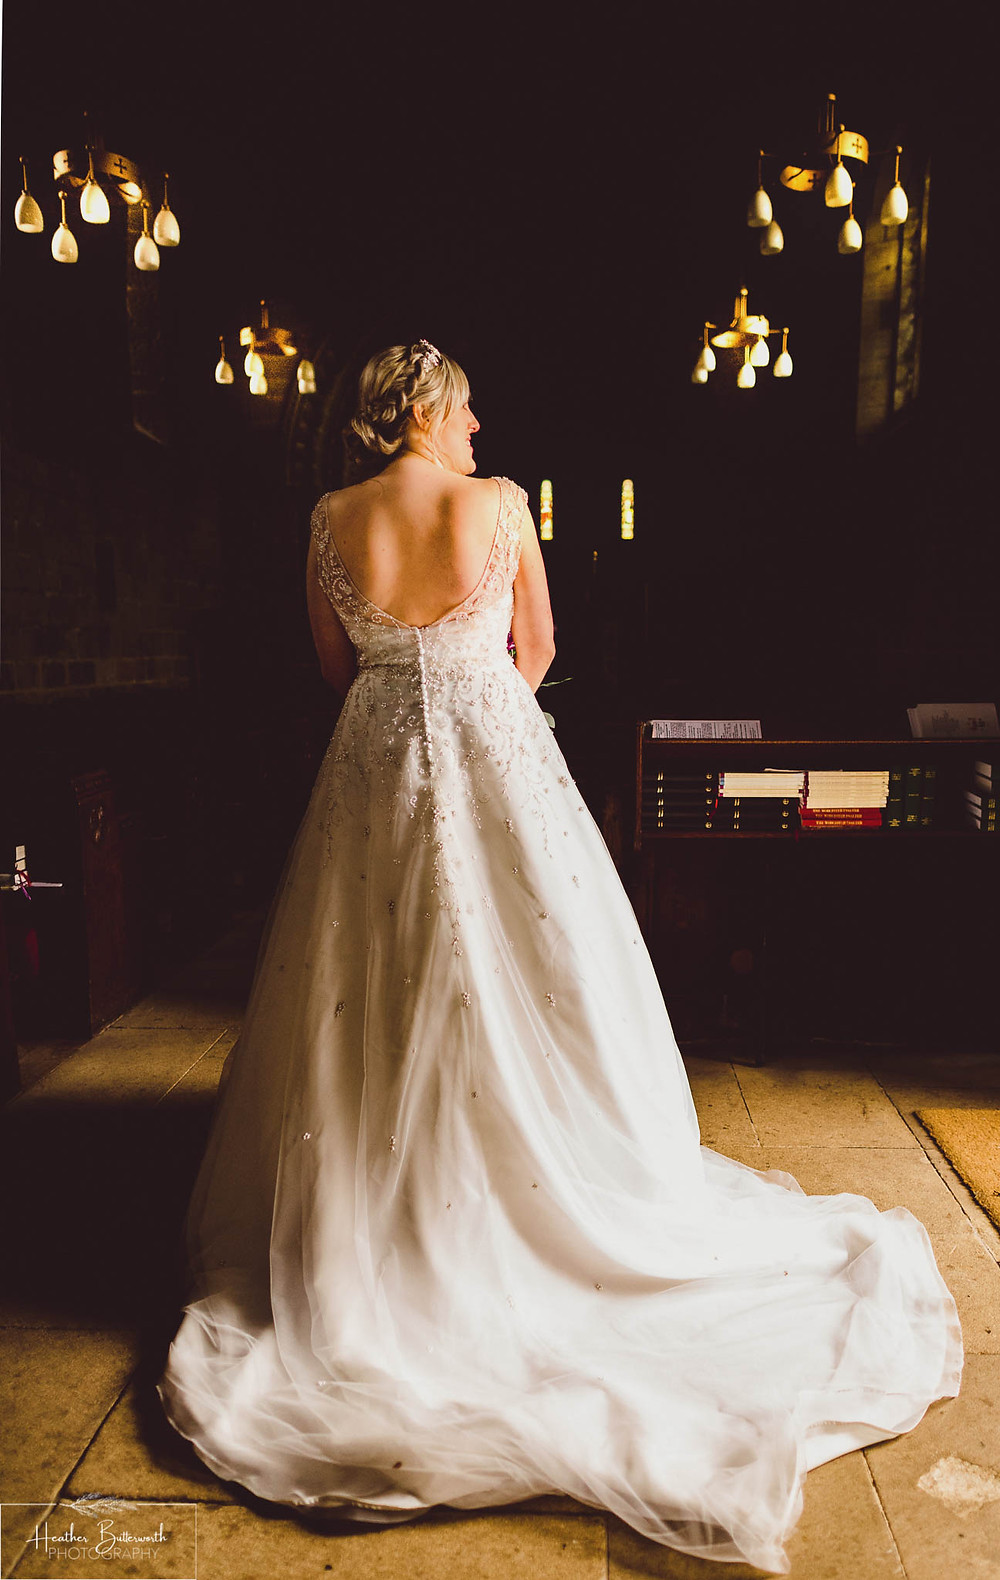 Bride in natural light in the church after her wedding at Adel Parish Church in Leeds, Yorkshire